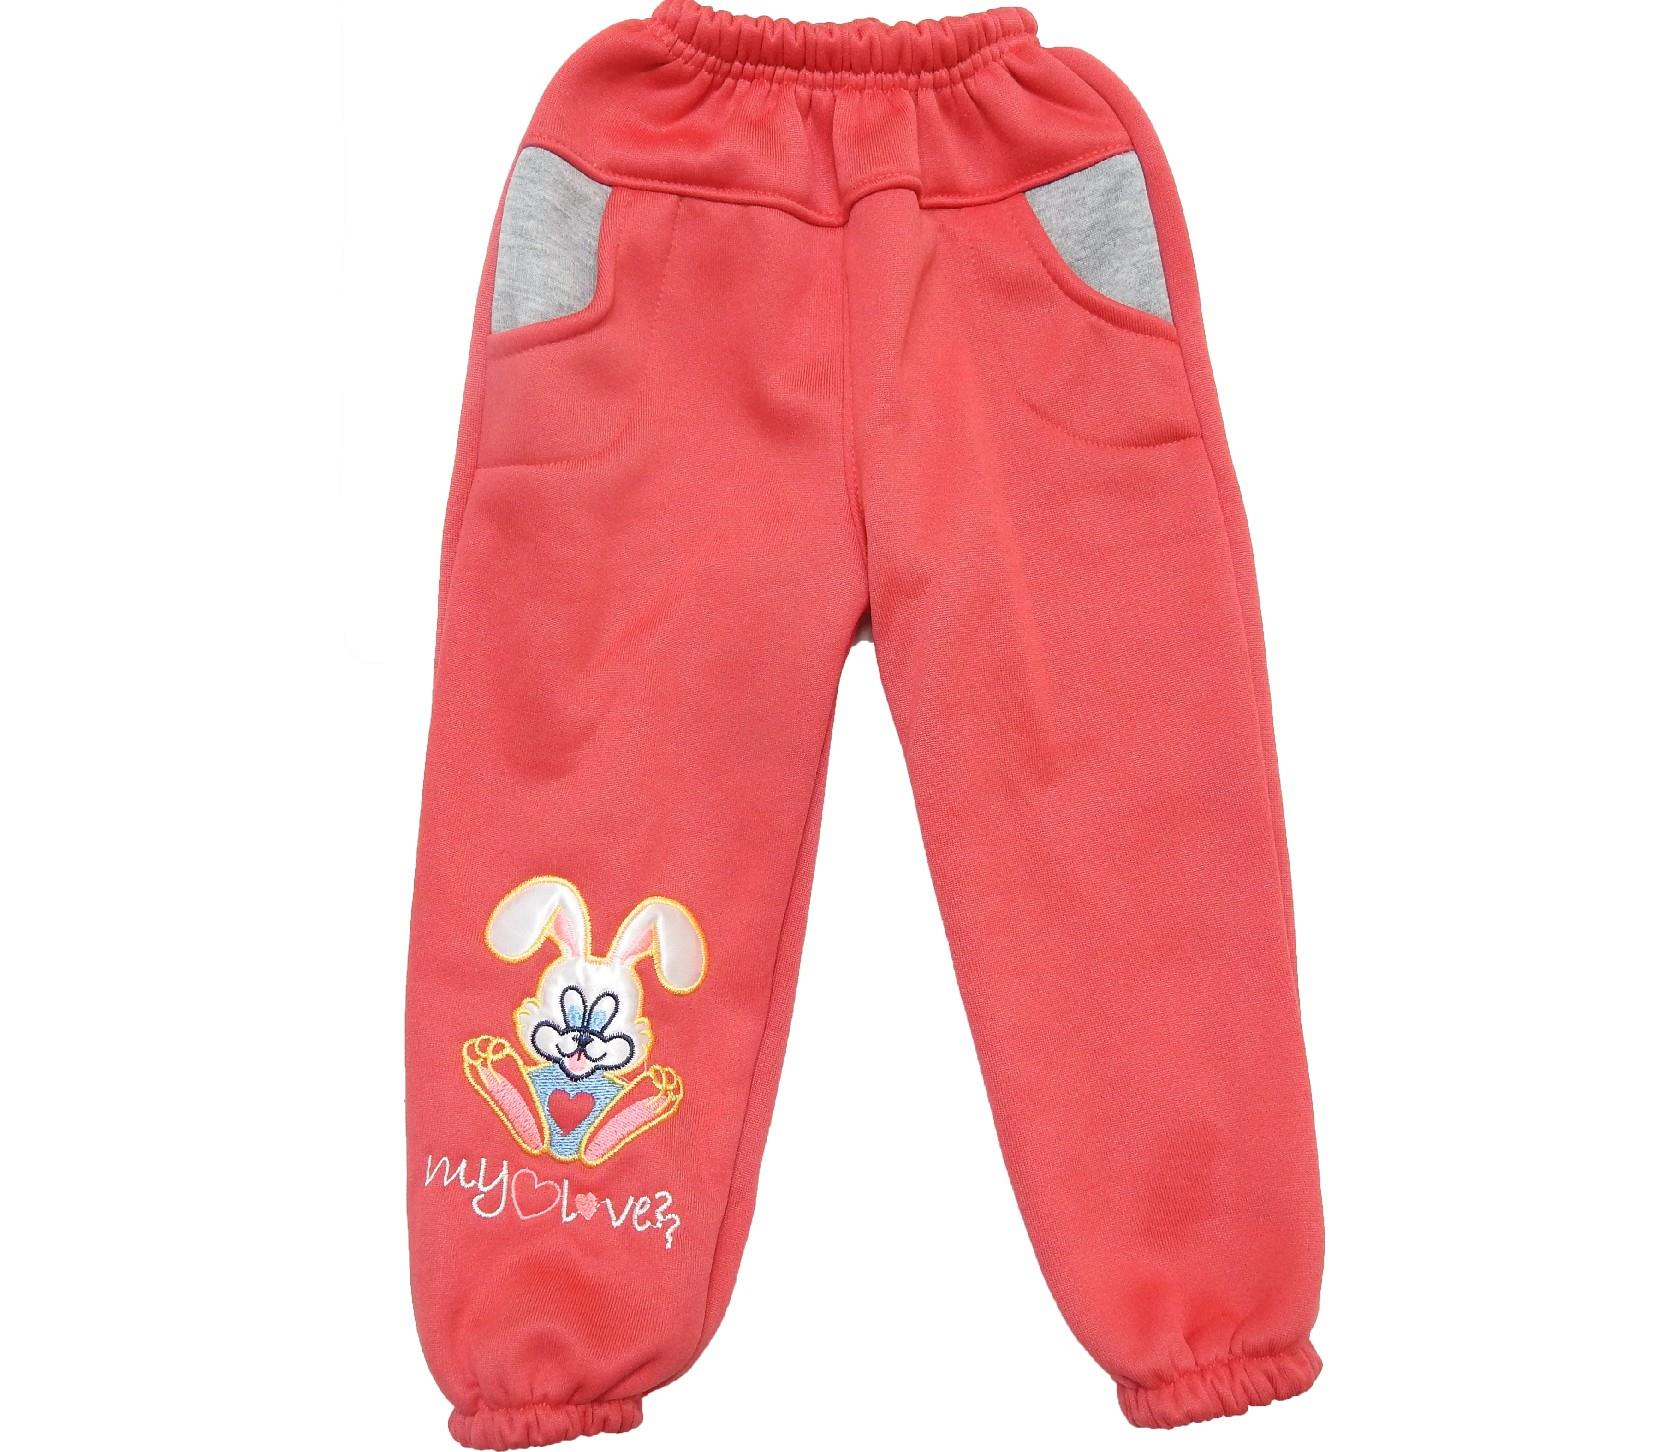 0170 wholesale cat printed single pant for girl (0-1-2-3-4 age)